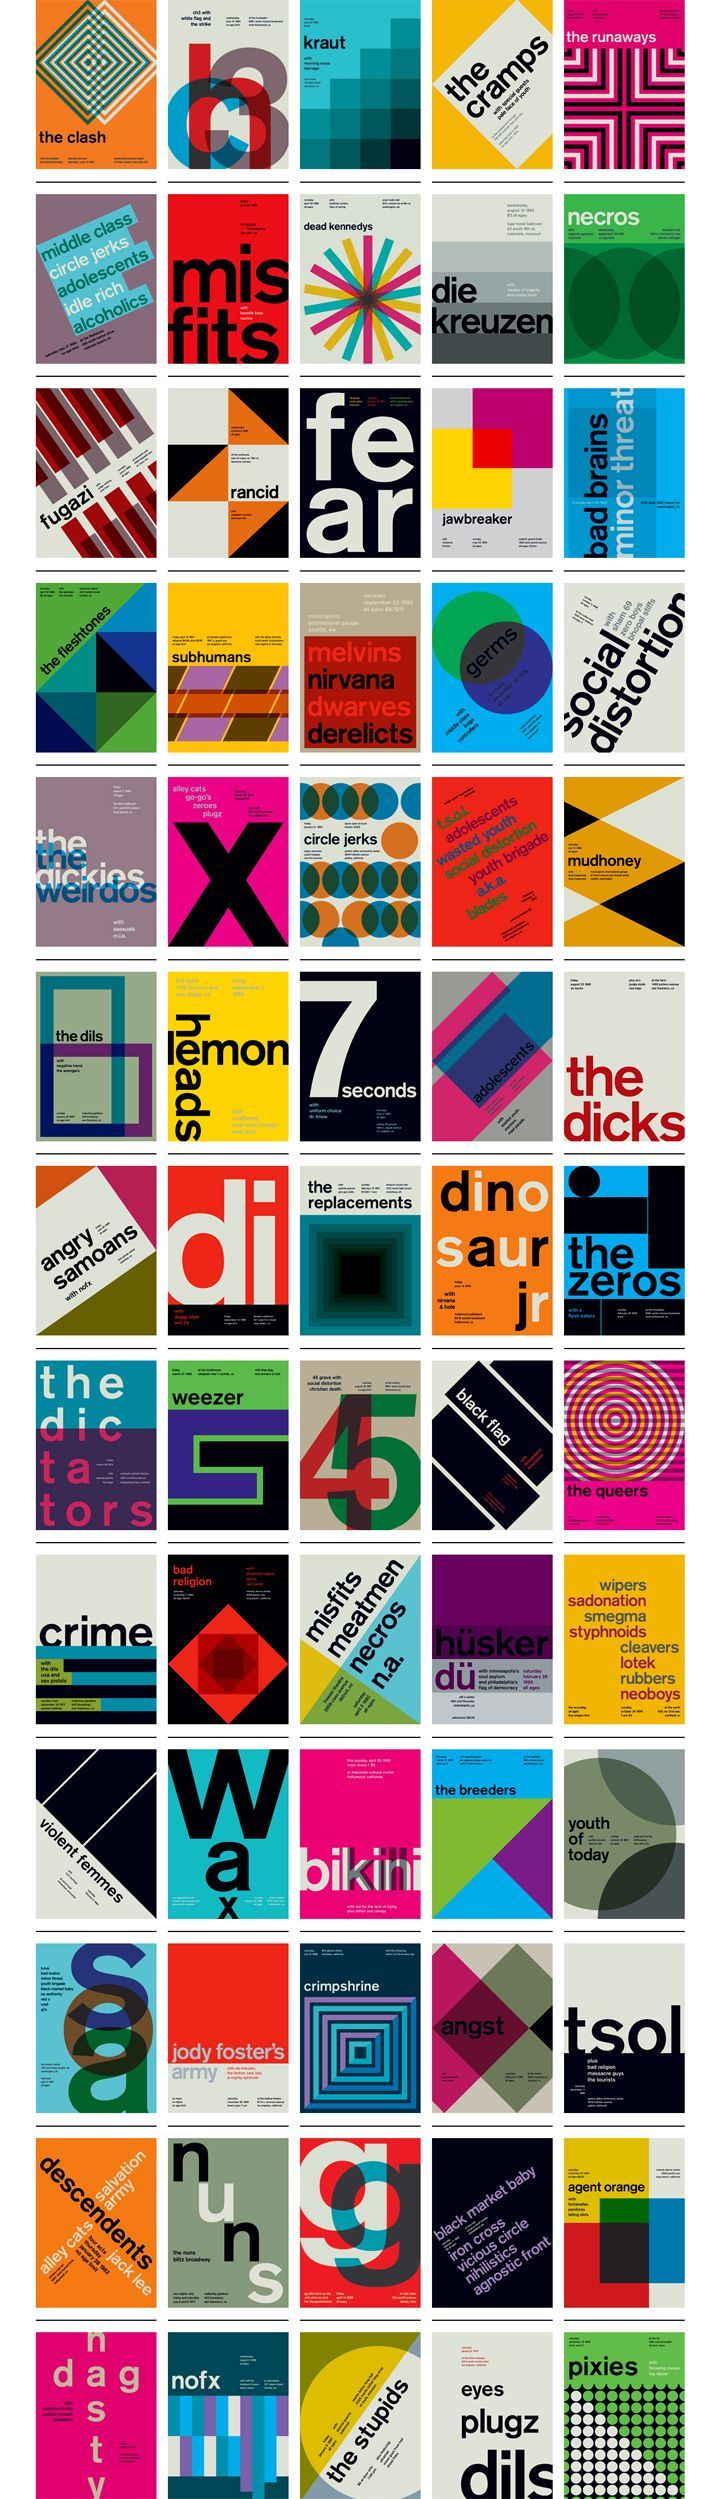 swissted is an ongoing project by graphic designer mike joyce, owner of stereotype design: